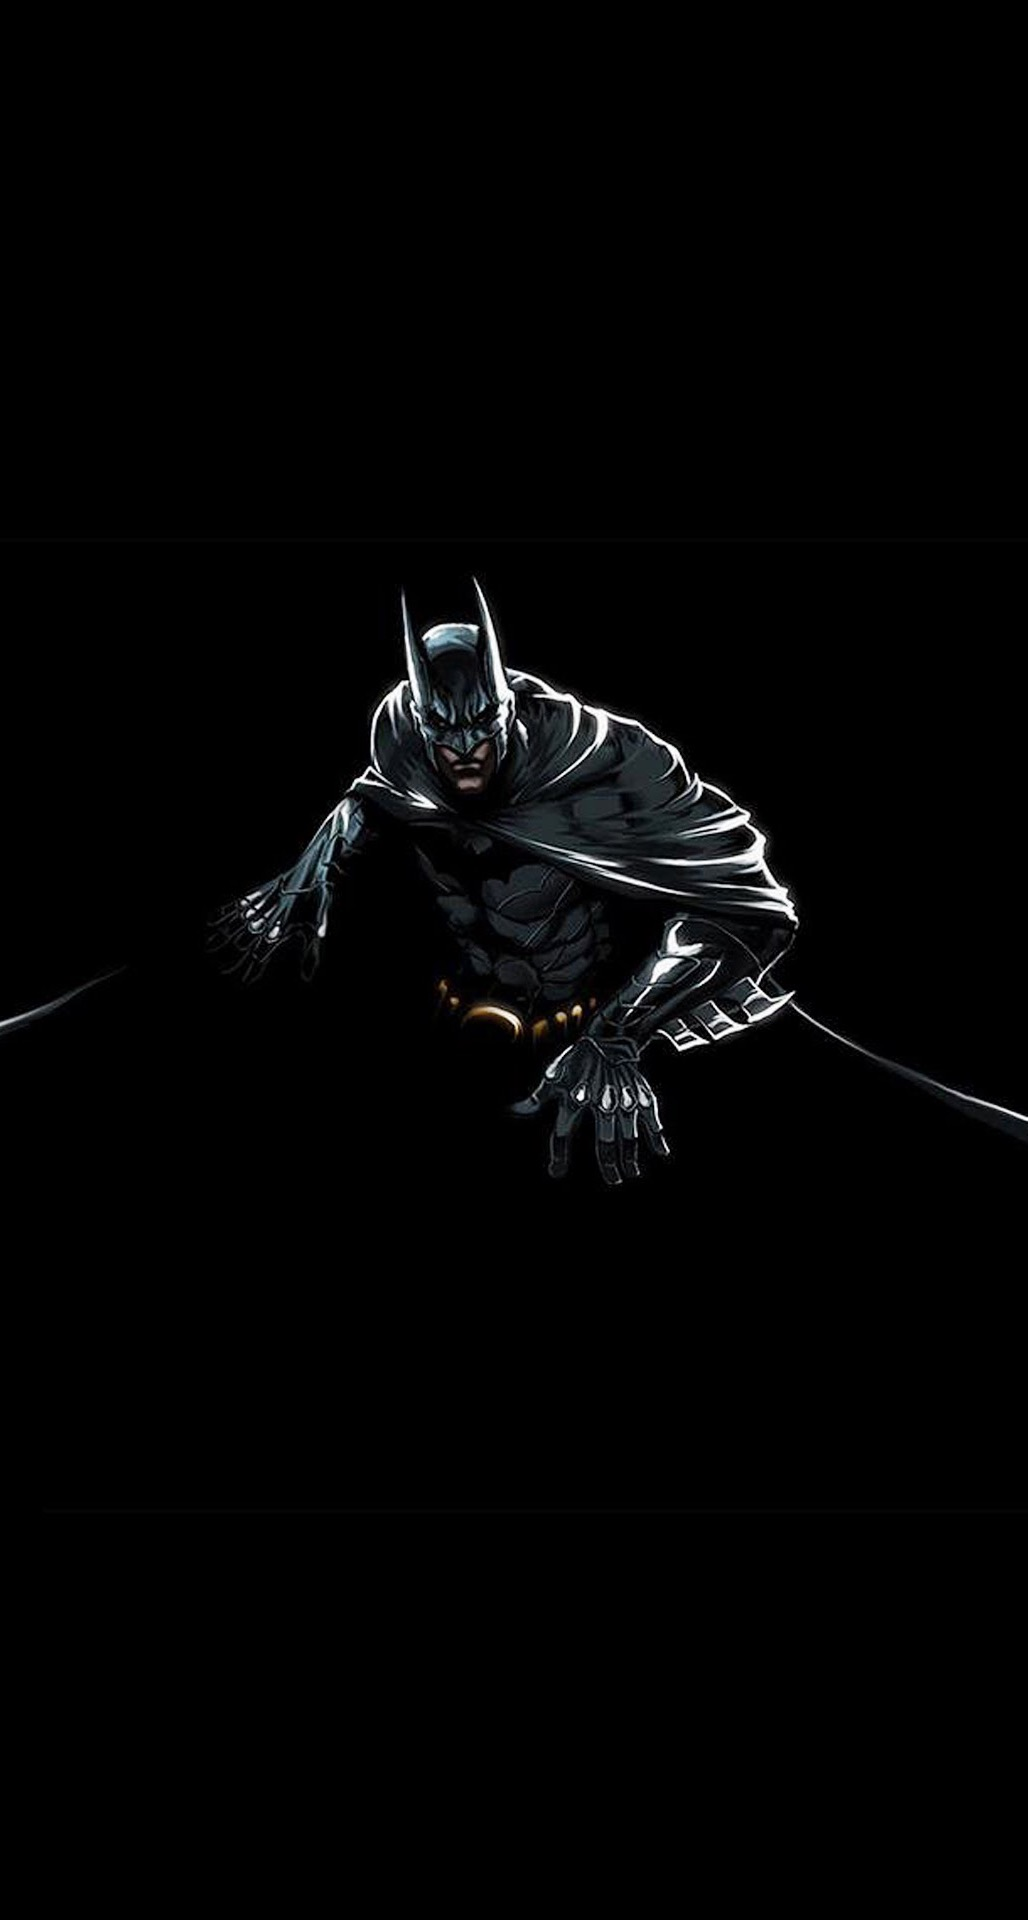 Wallpaper iphone 6 hd - Batman Dark Iphone 6 Plus Hd Wallpaper Ipod Wallpaper Hd Free